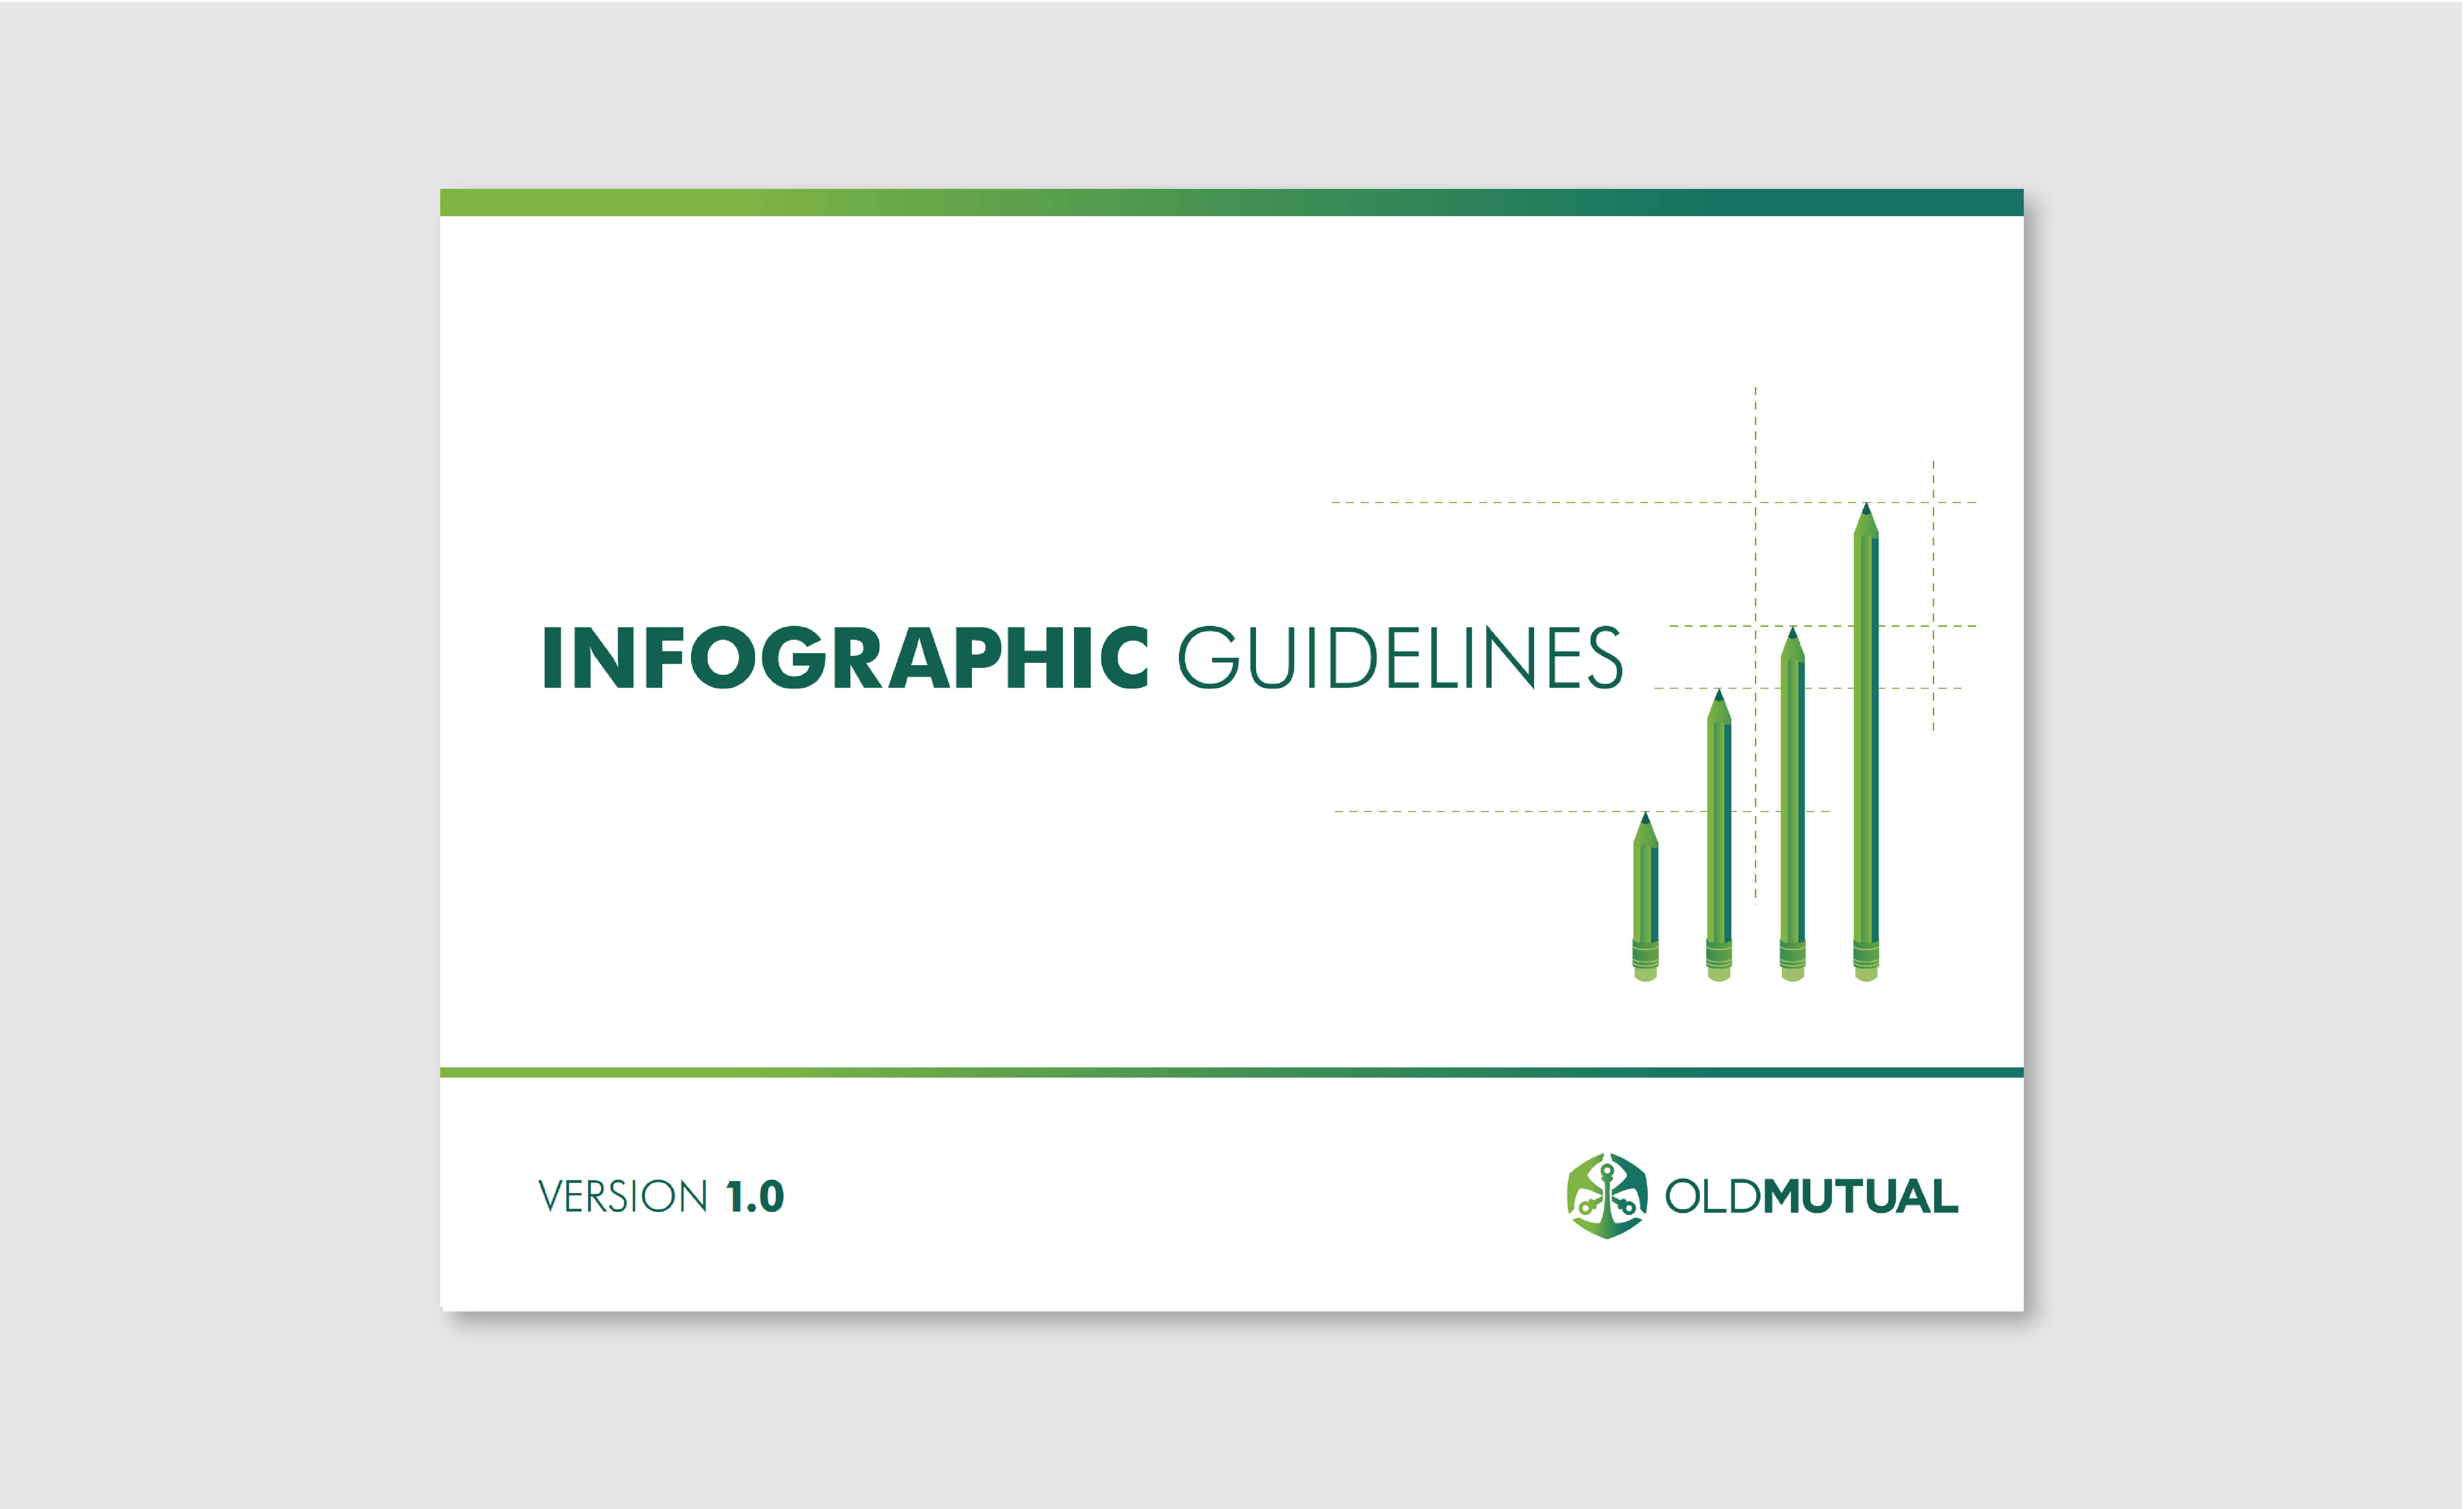 infographic guidelines